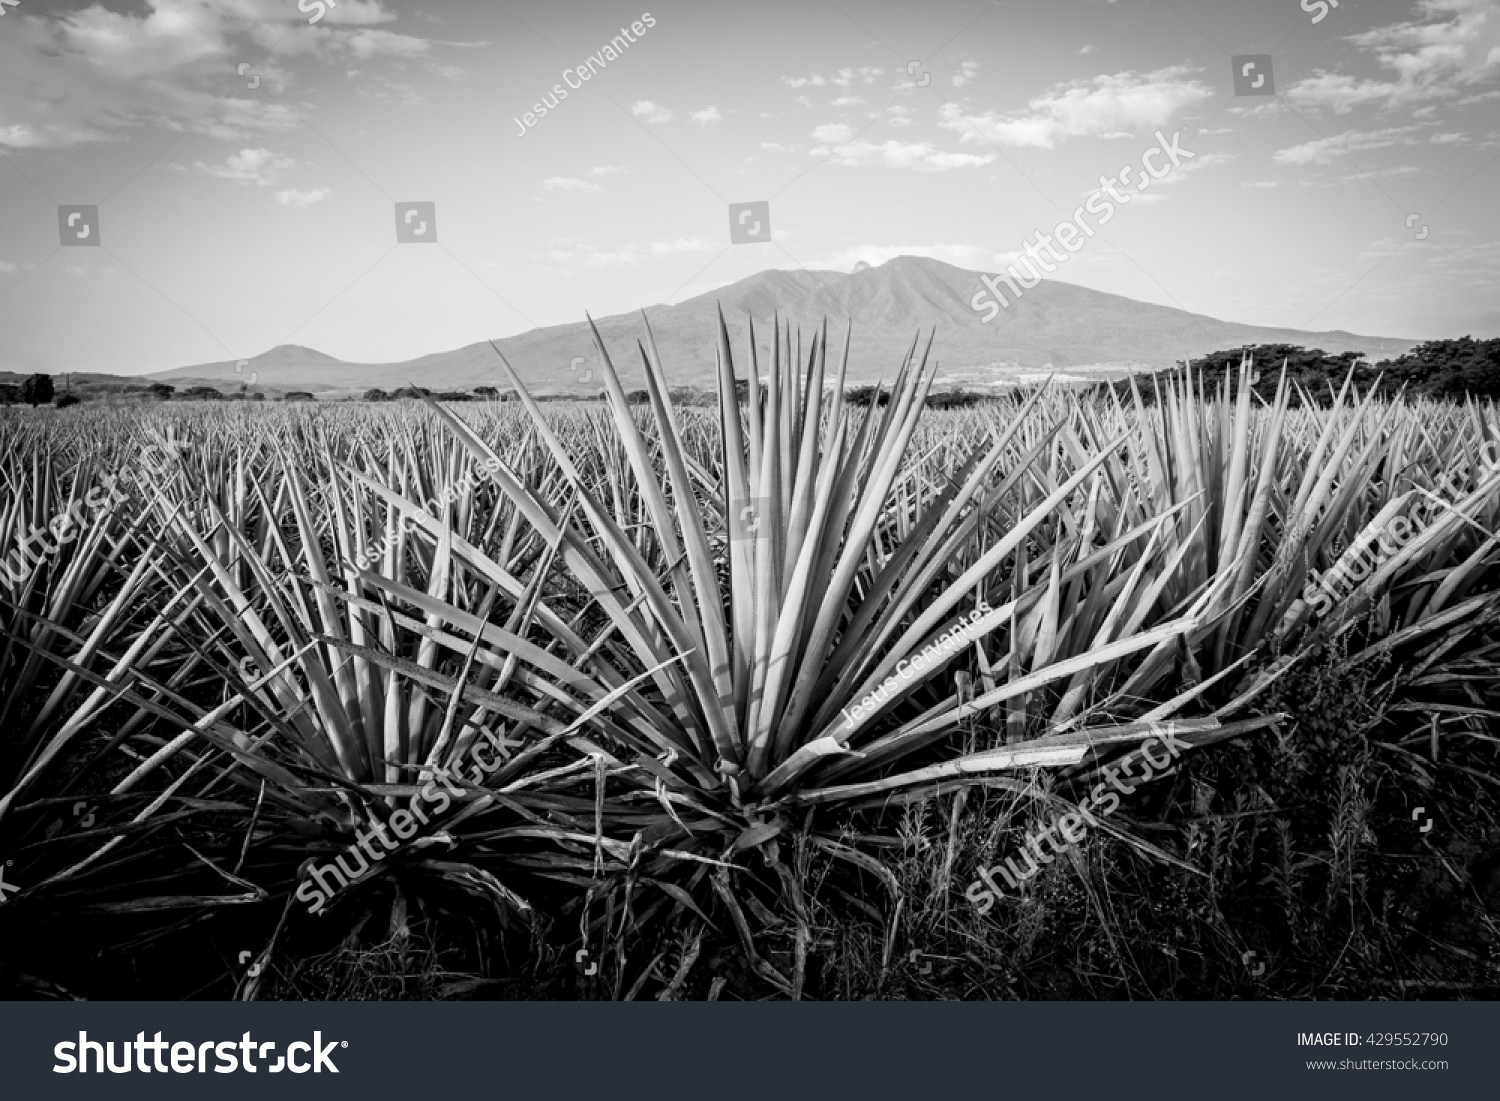 Agave tequila landscape to guadalajara jalisco mexico black and white